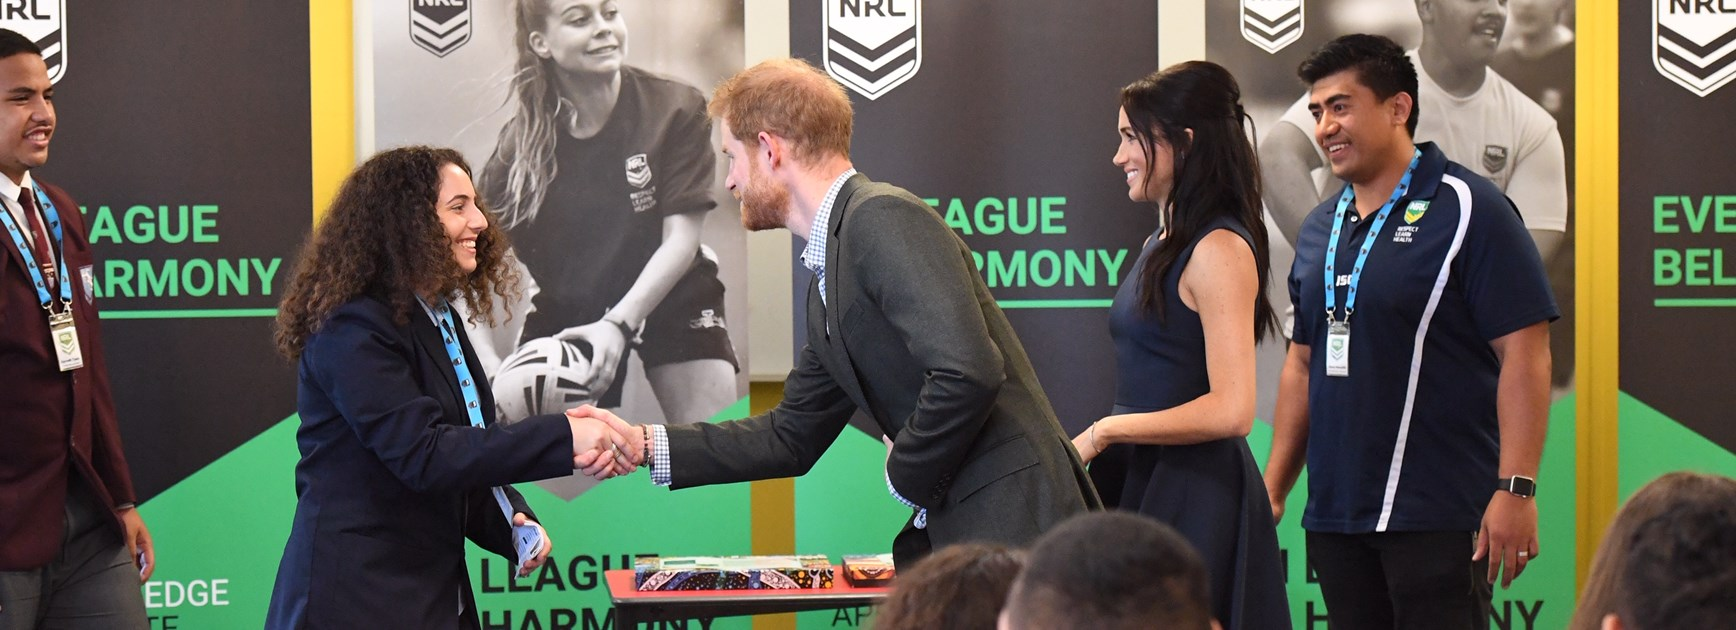 Prince Harry and Meghan Markle took part in the National Rugby League's 'In League in Harmony' program.